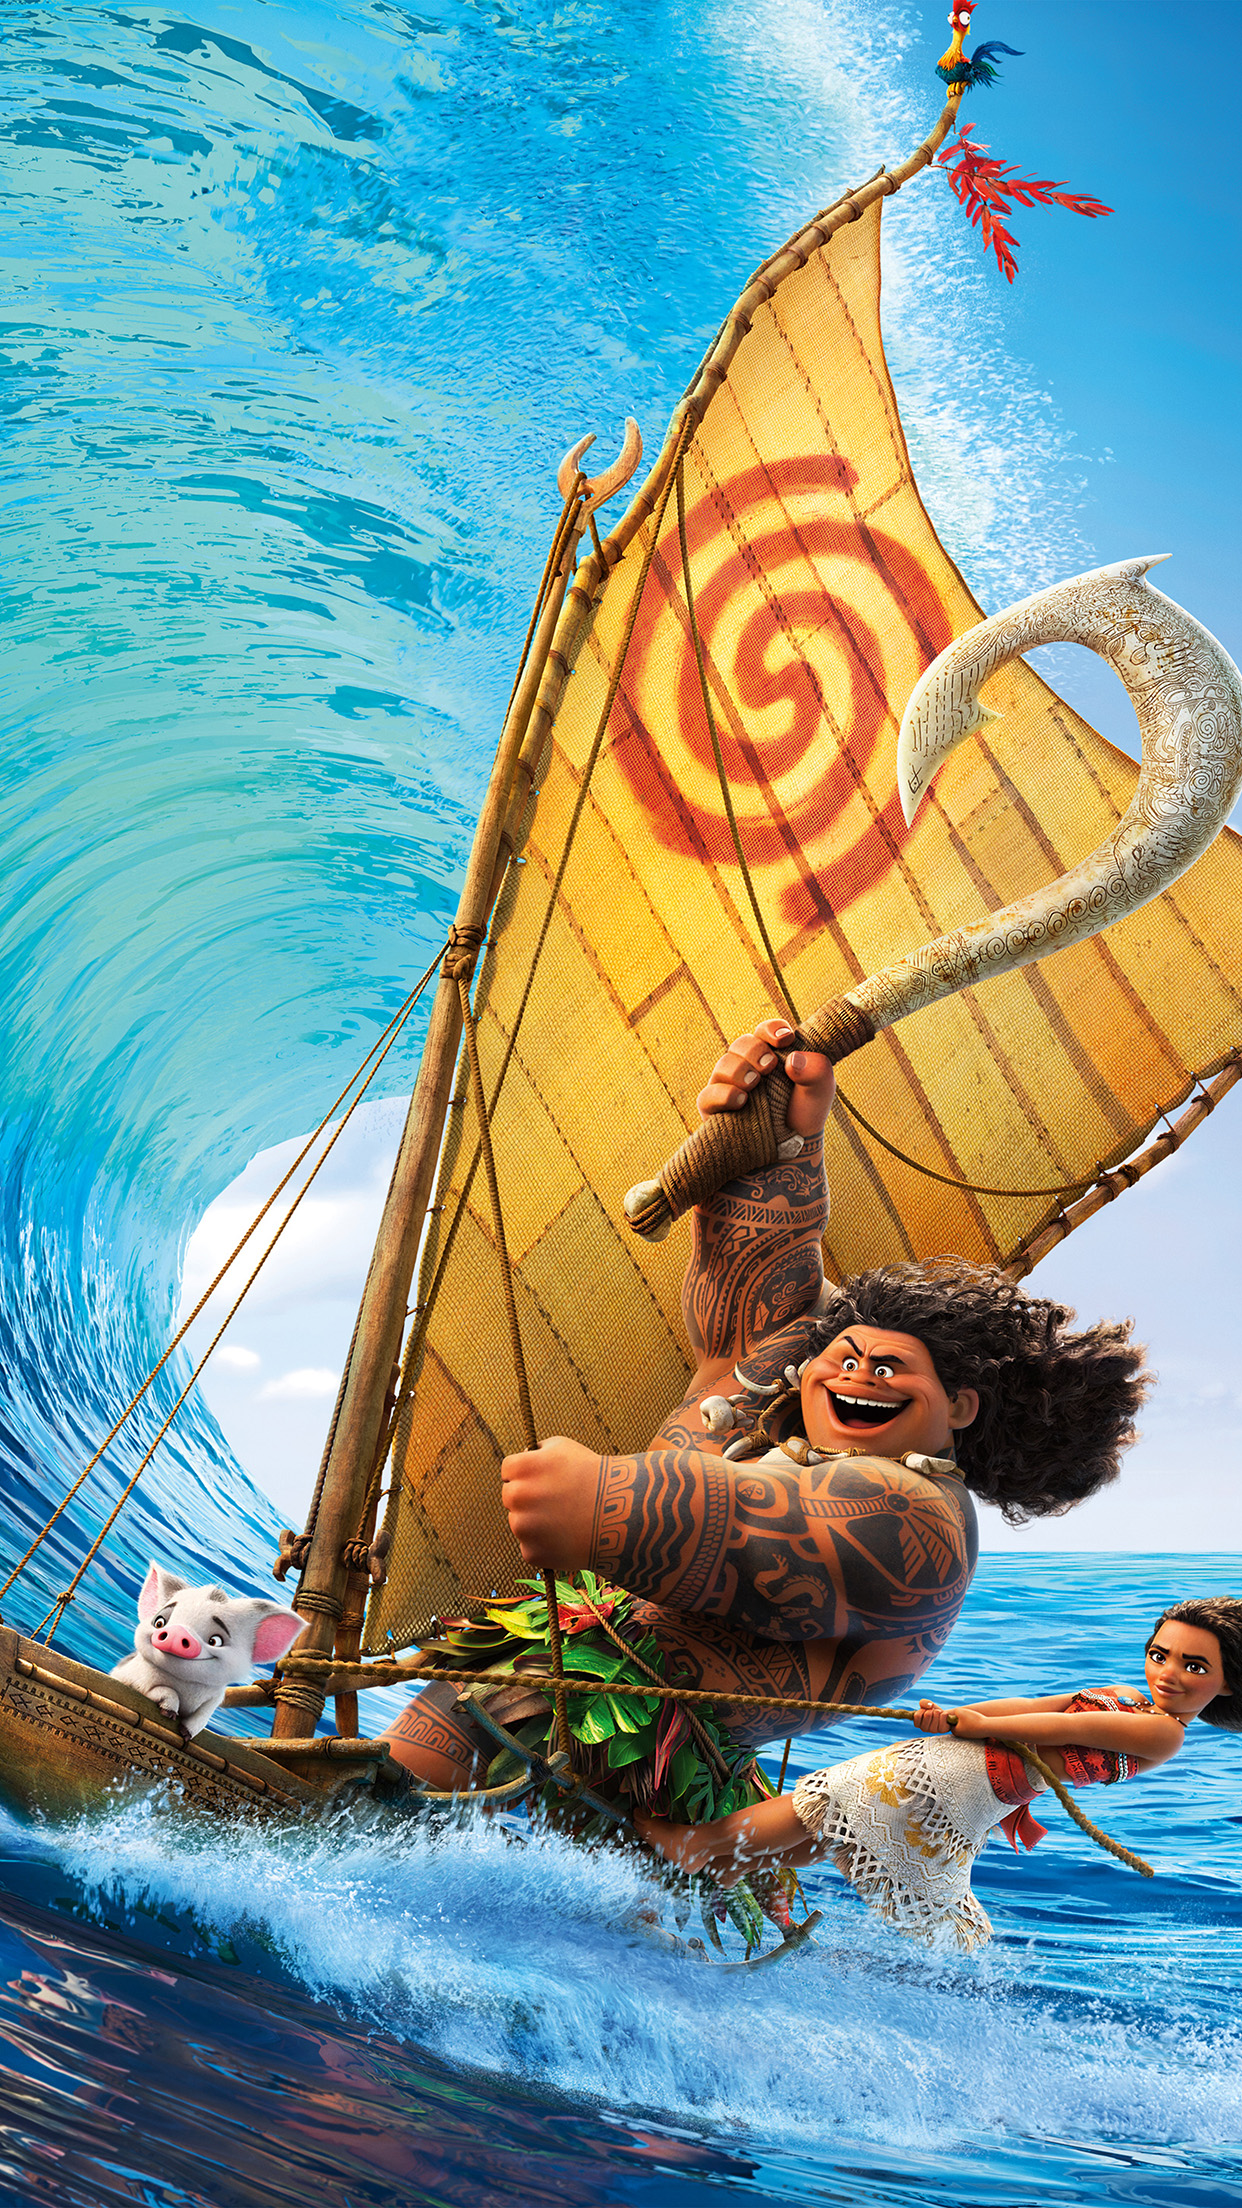 Surf Moana Disney Film Anime Illustration Art Android Wallpaper